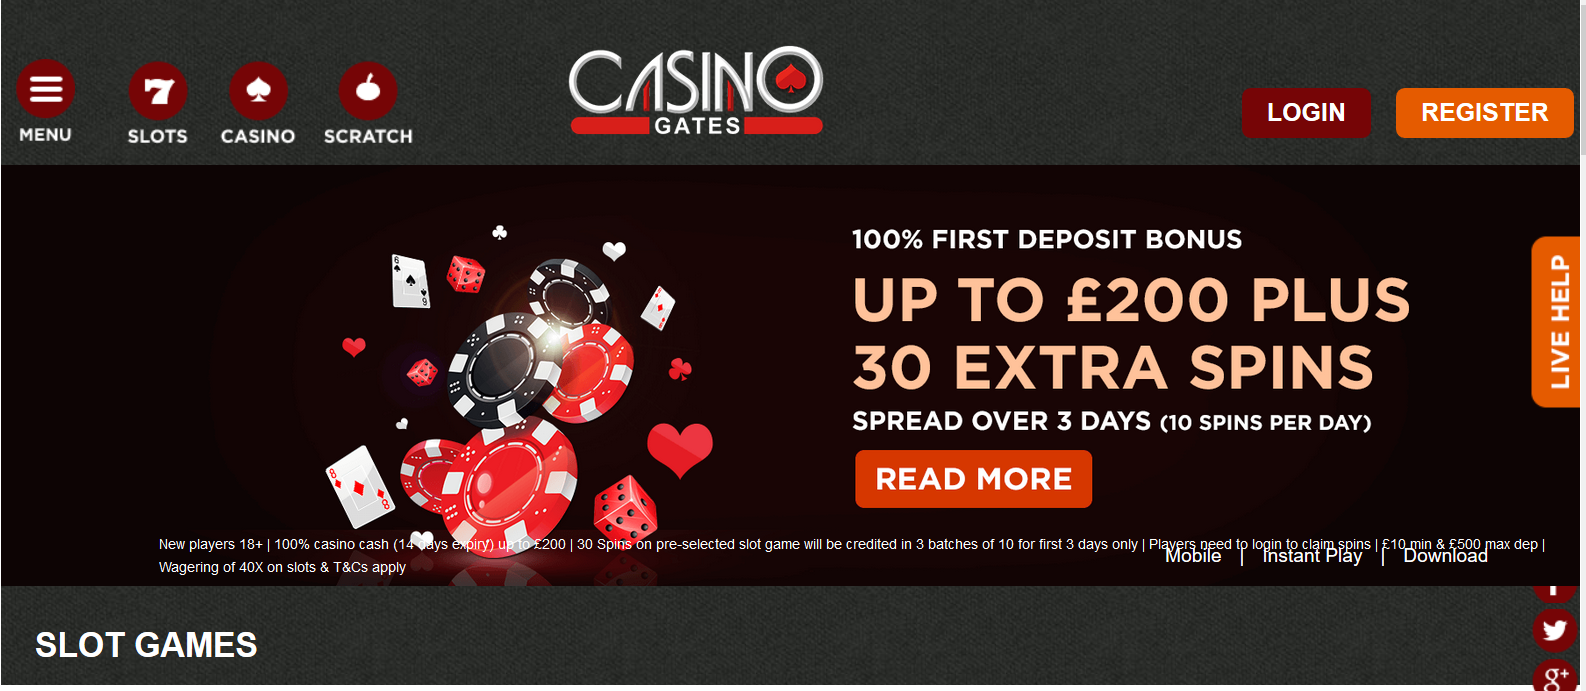 UK Bingo and Casino Games - Casino Gates